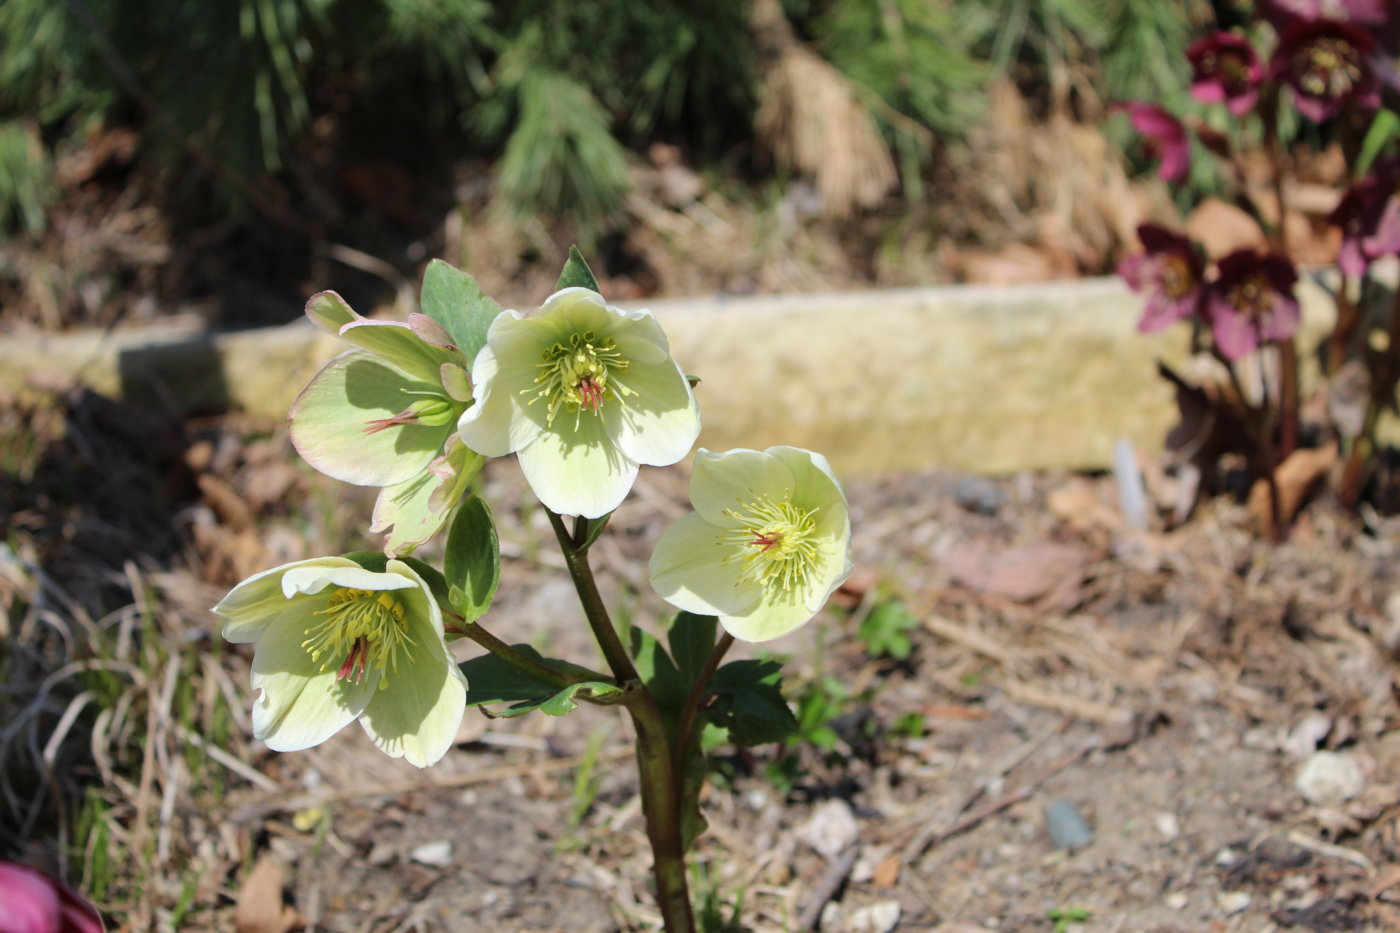 Hellebores abound along the hillside garden's walking path in early April.